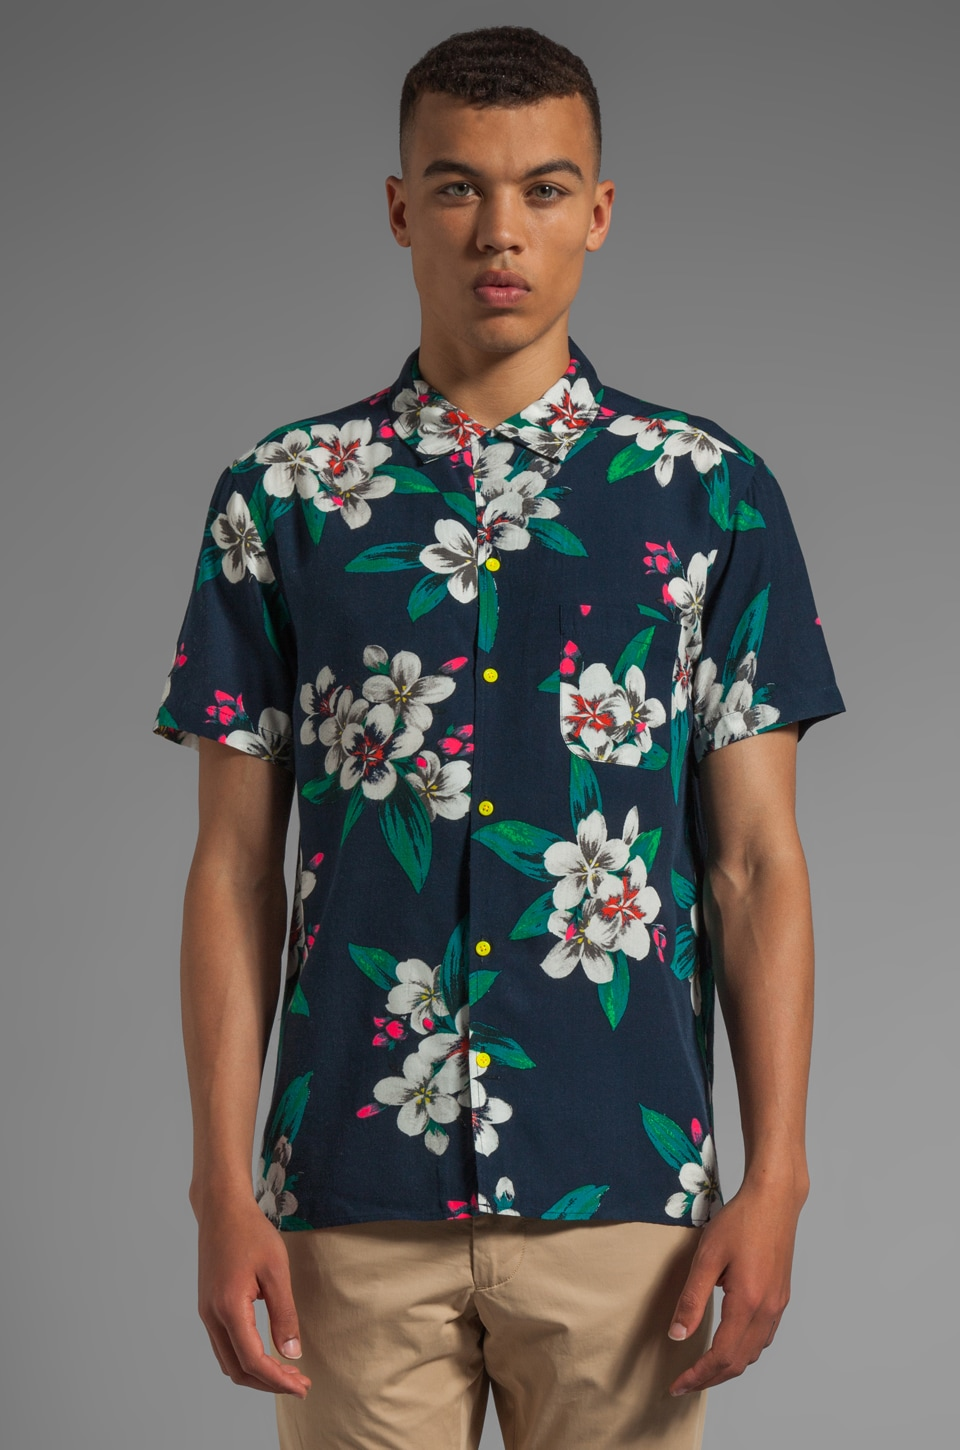 Marc by Marc Jacobs Dempsey Floral Shirt in Total Eclipse